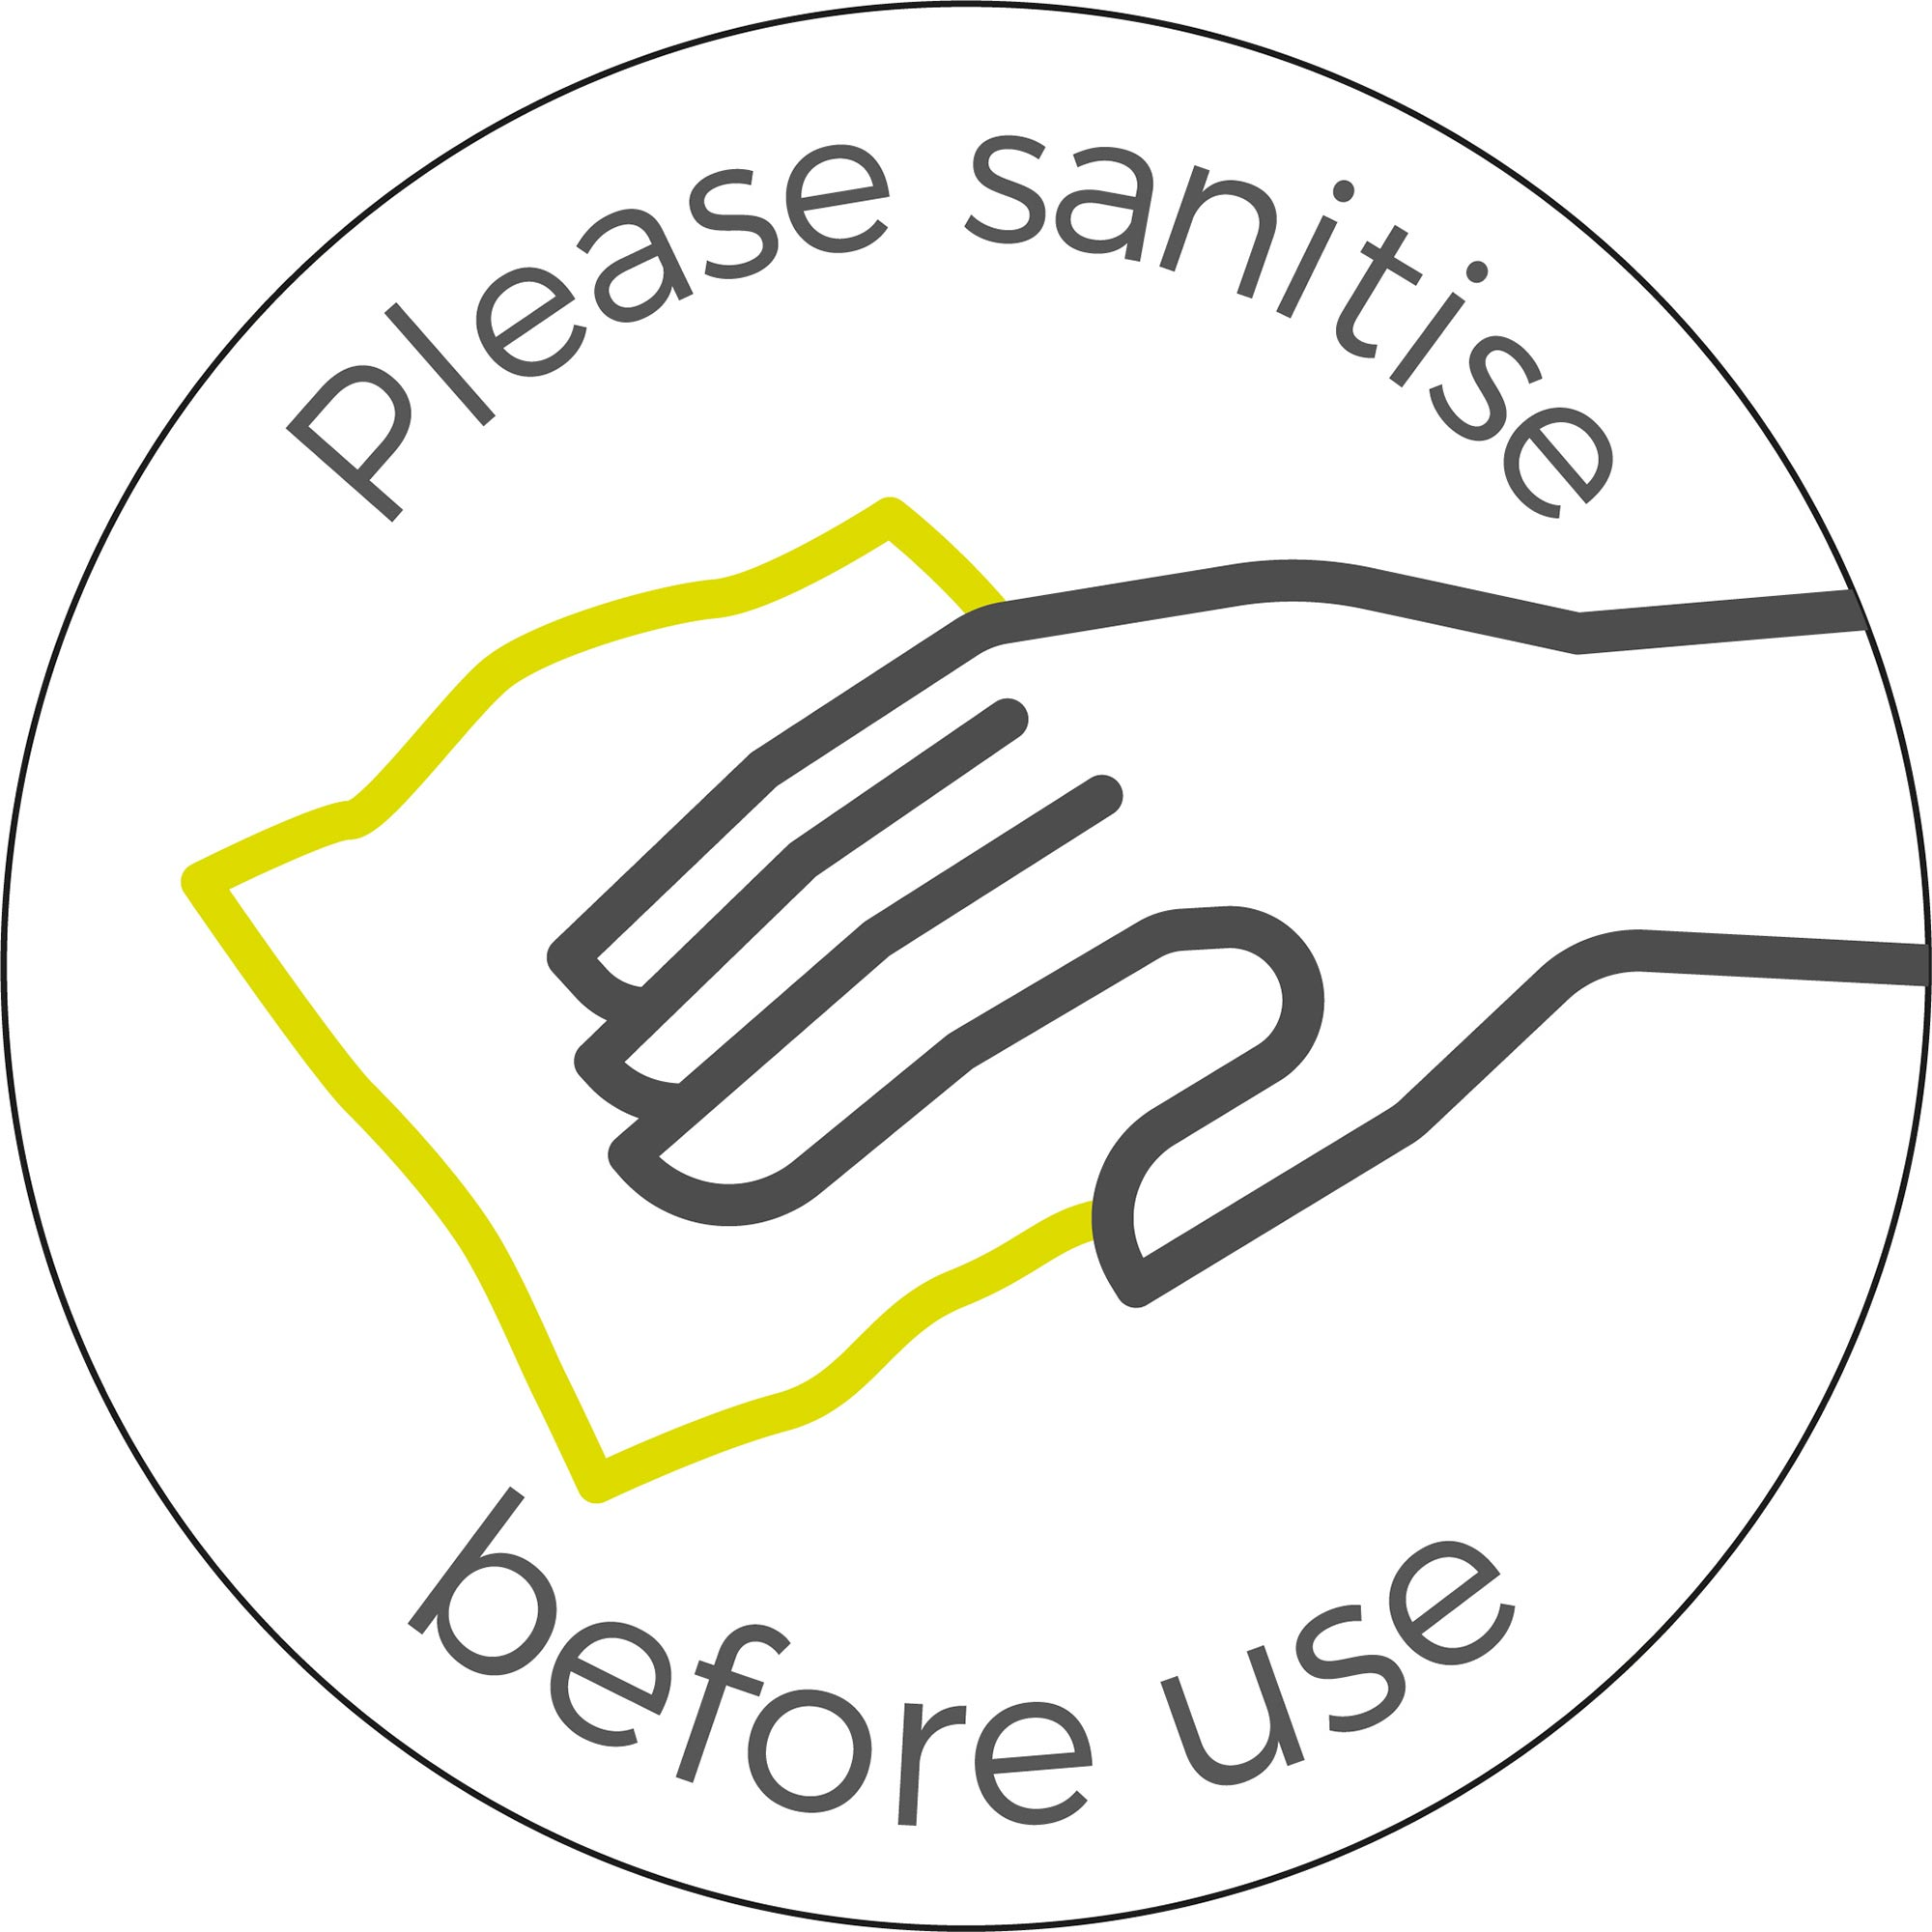 Please Sanitise - White Sticker